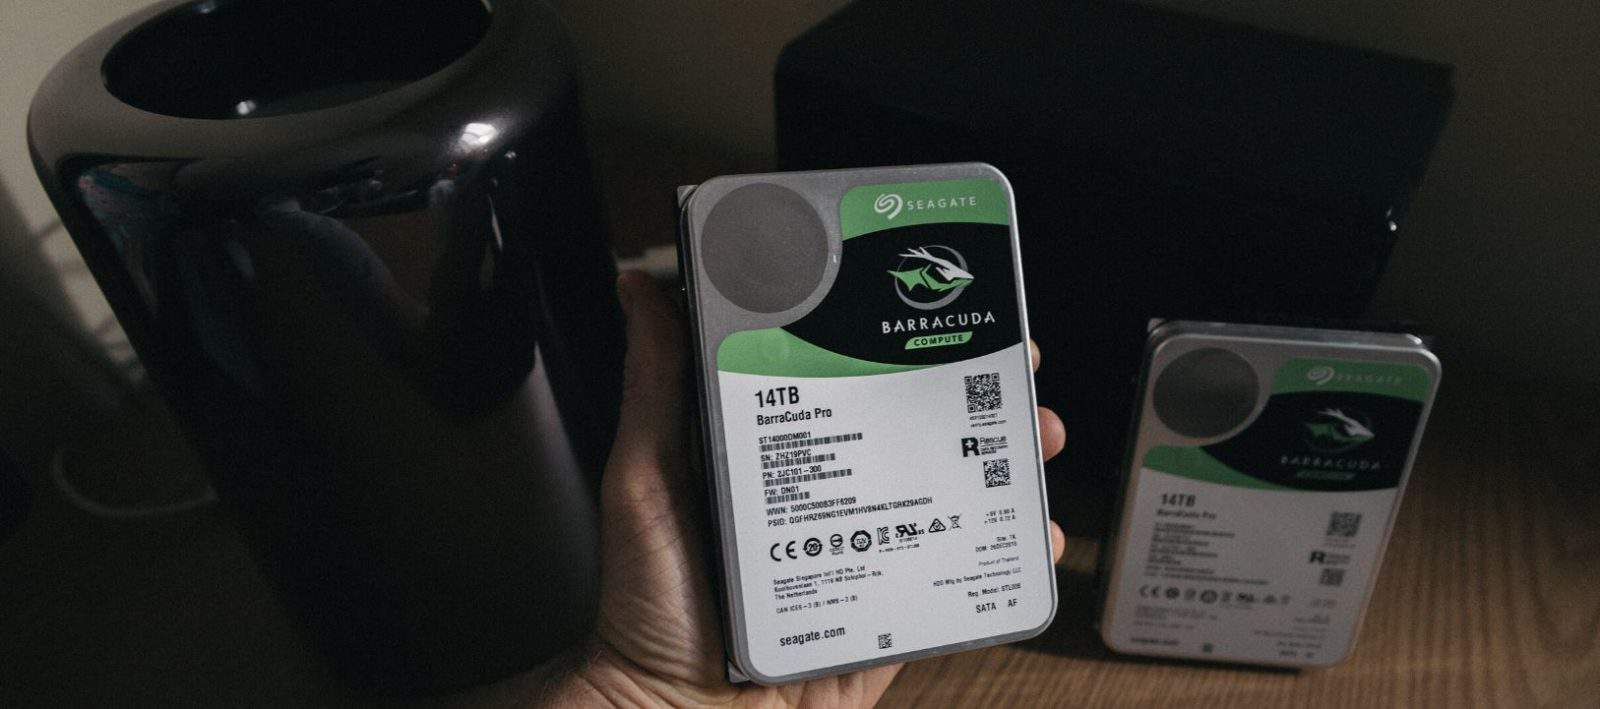 hand holding Seagate external hard drive in dark room